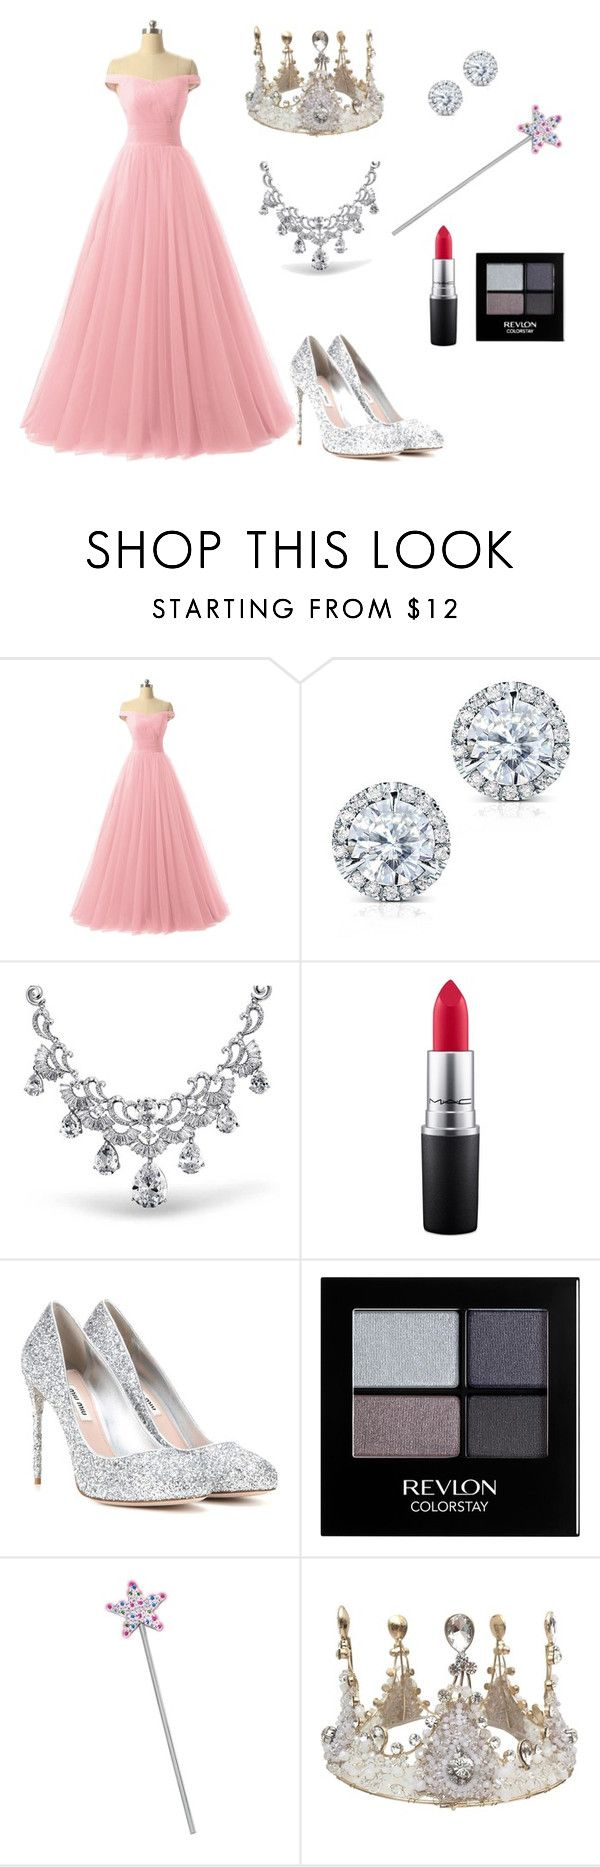 """""The Wizard of Oz"" Glinda Costume"" by oliviaf14 on Polyvore featuring Kobelli, Bling Jewelry, MAC Cosmetics, Miu Miu and Revlon"